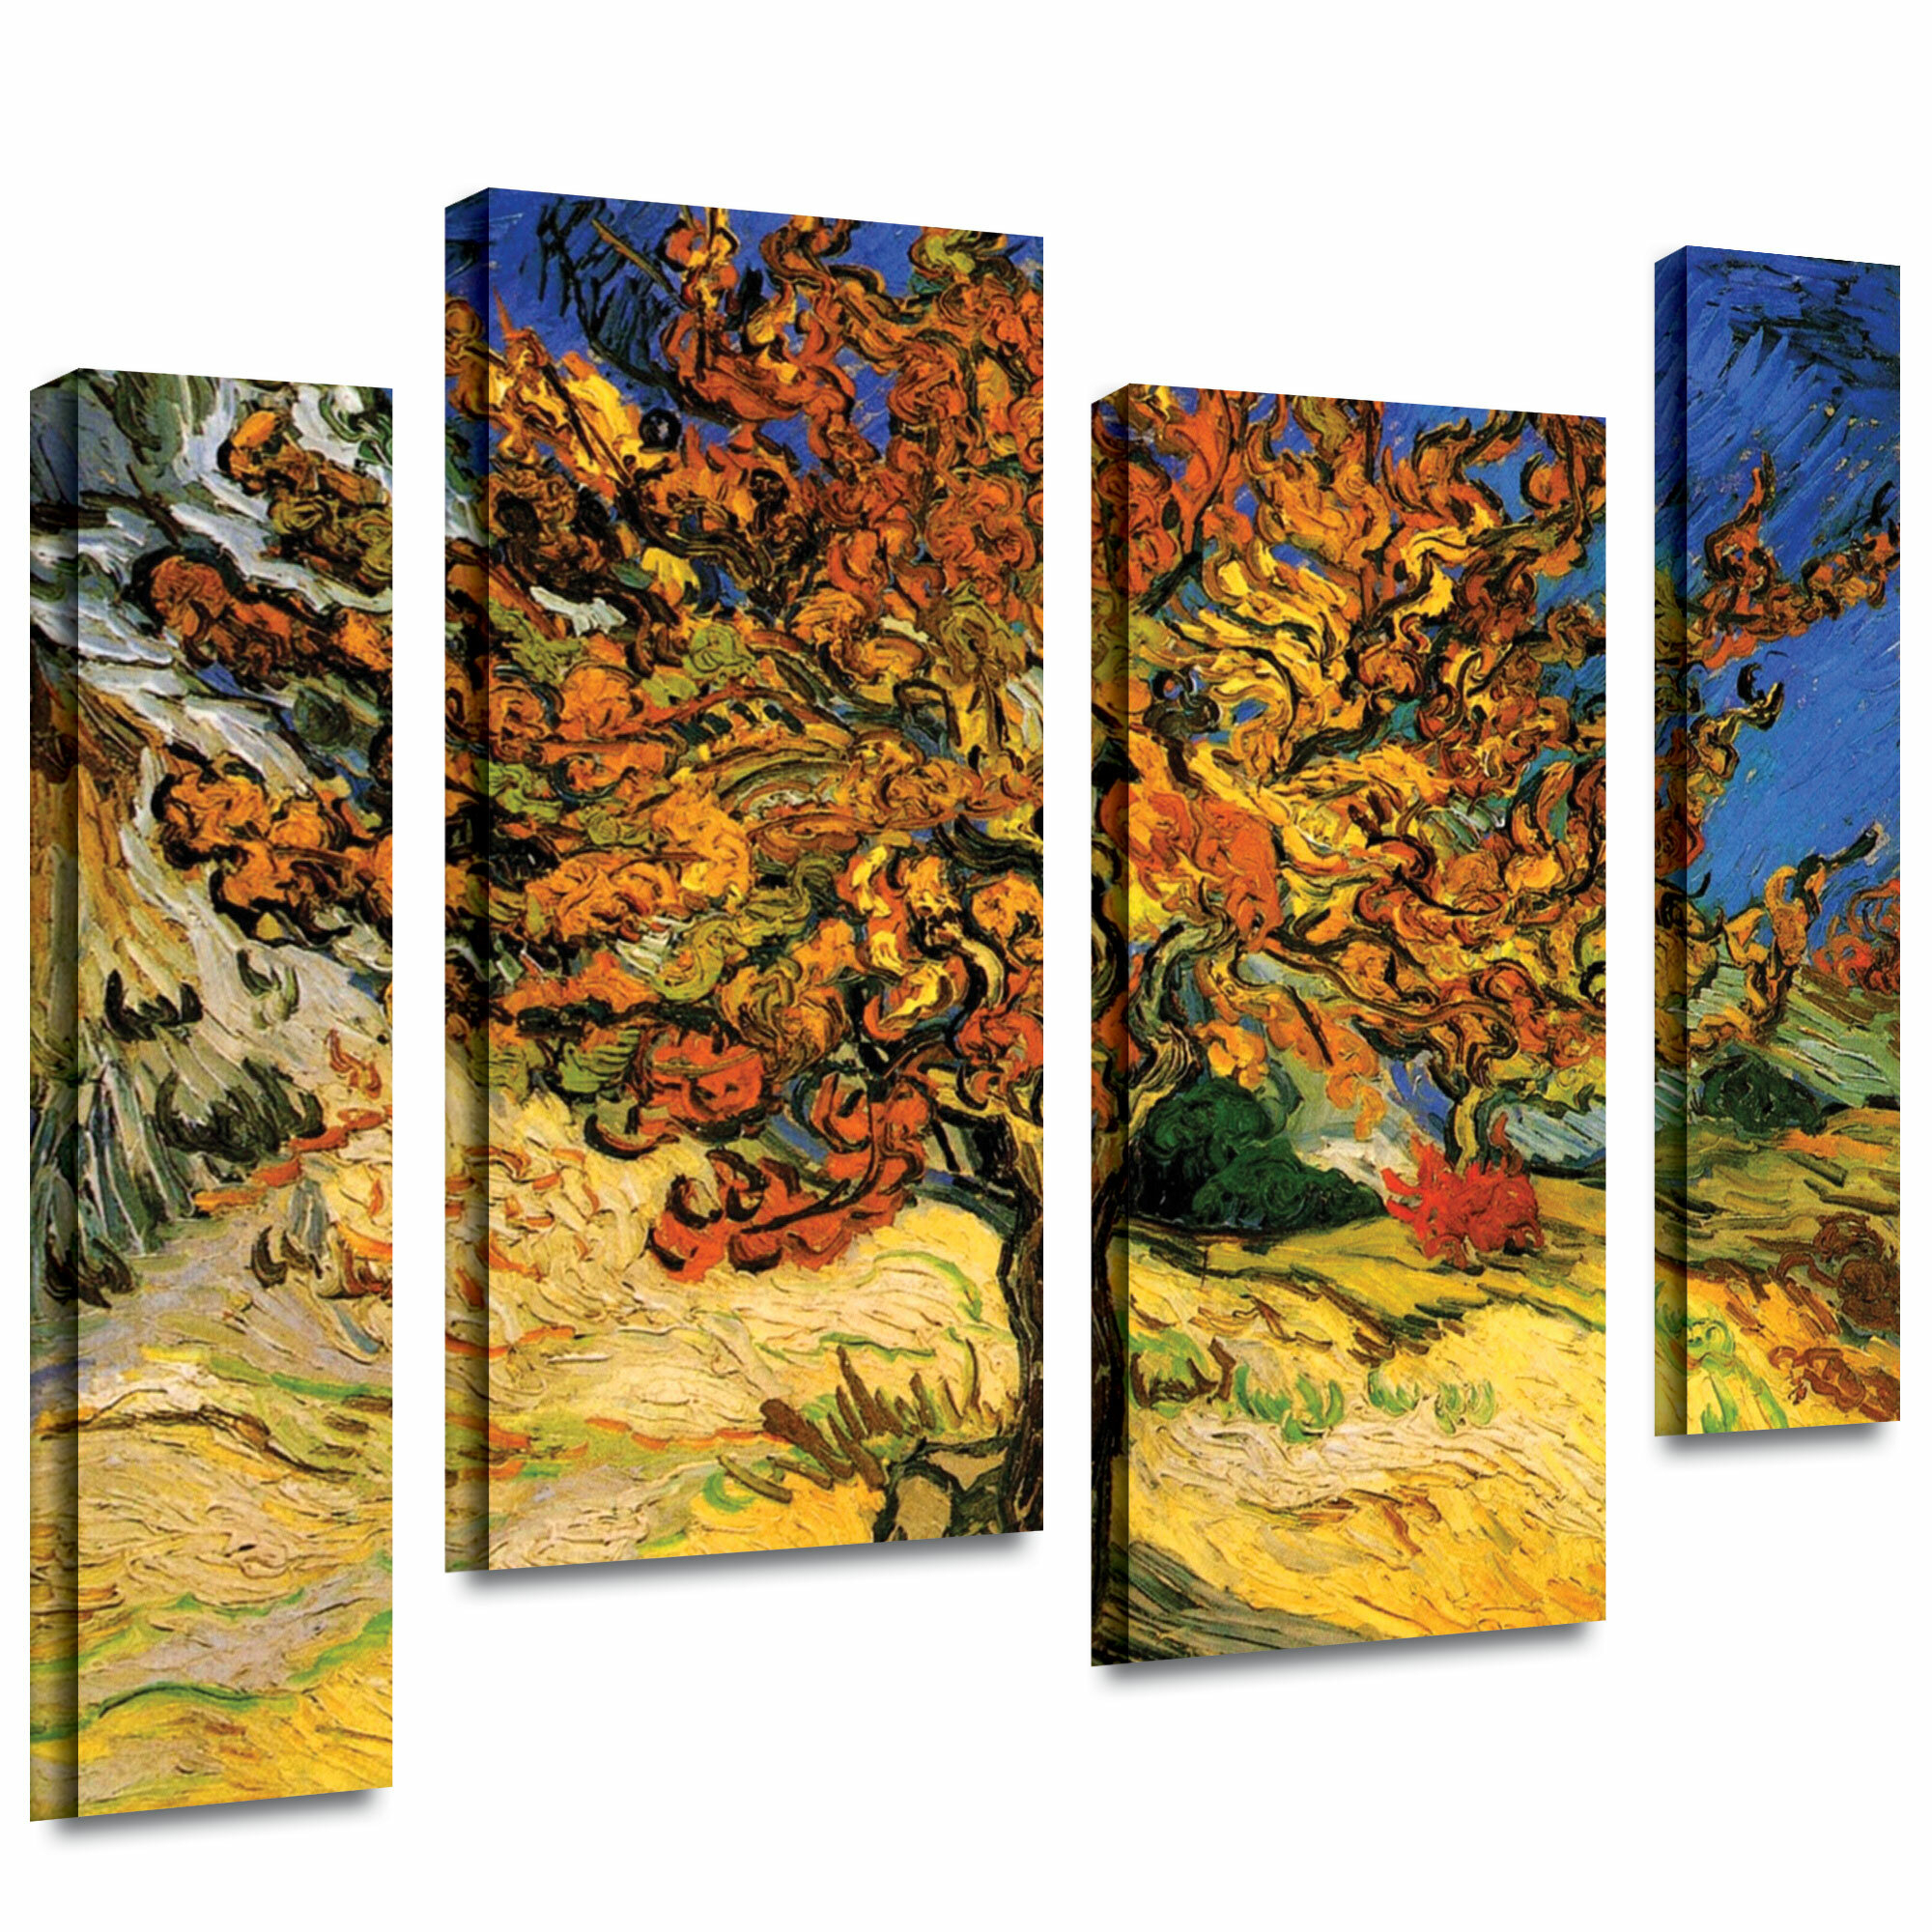 'mulberry Tree'vincent Van Gogh 4 Piece Painting Print On Wrapped Canvas Set With Regard To Latest Blended Fabric The Mulberry Tree – Van Gogh Wall Hangings (View 11 of 20)